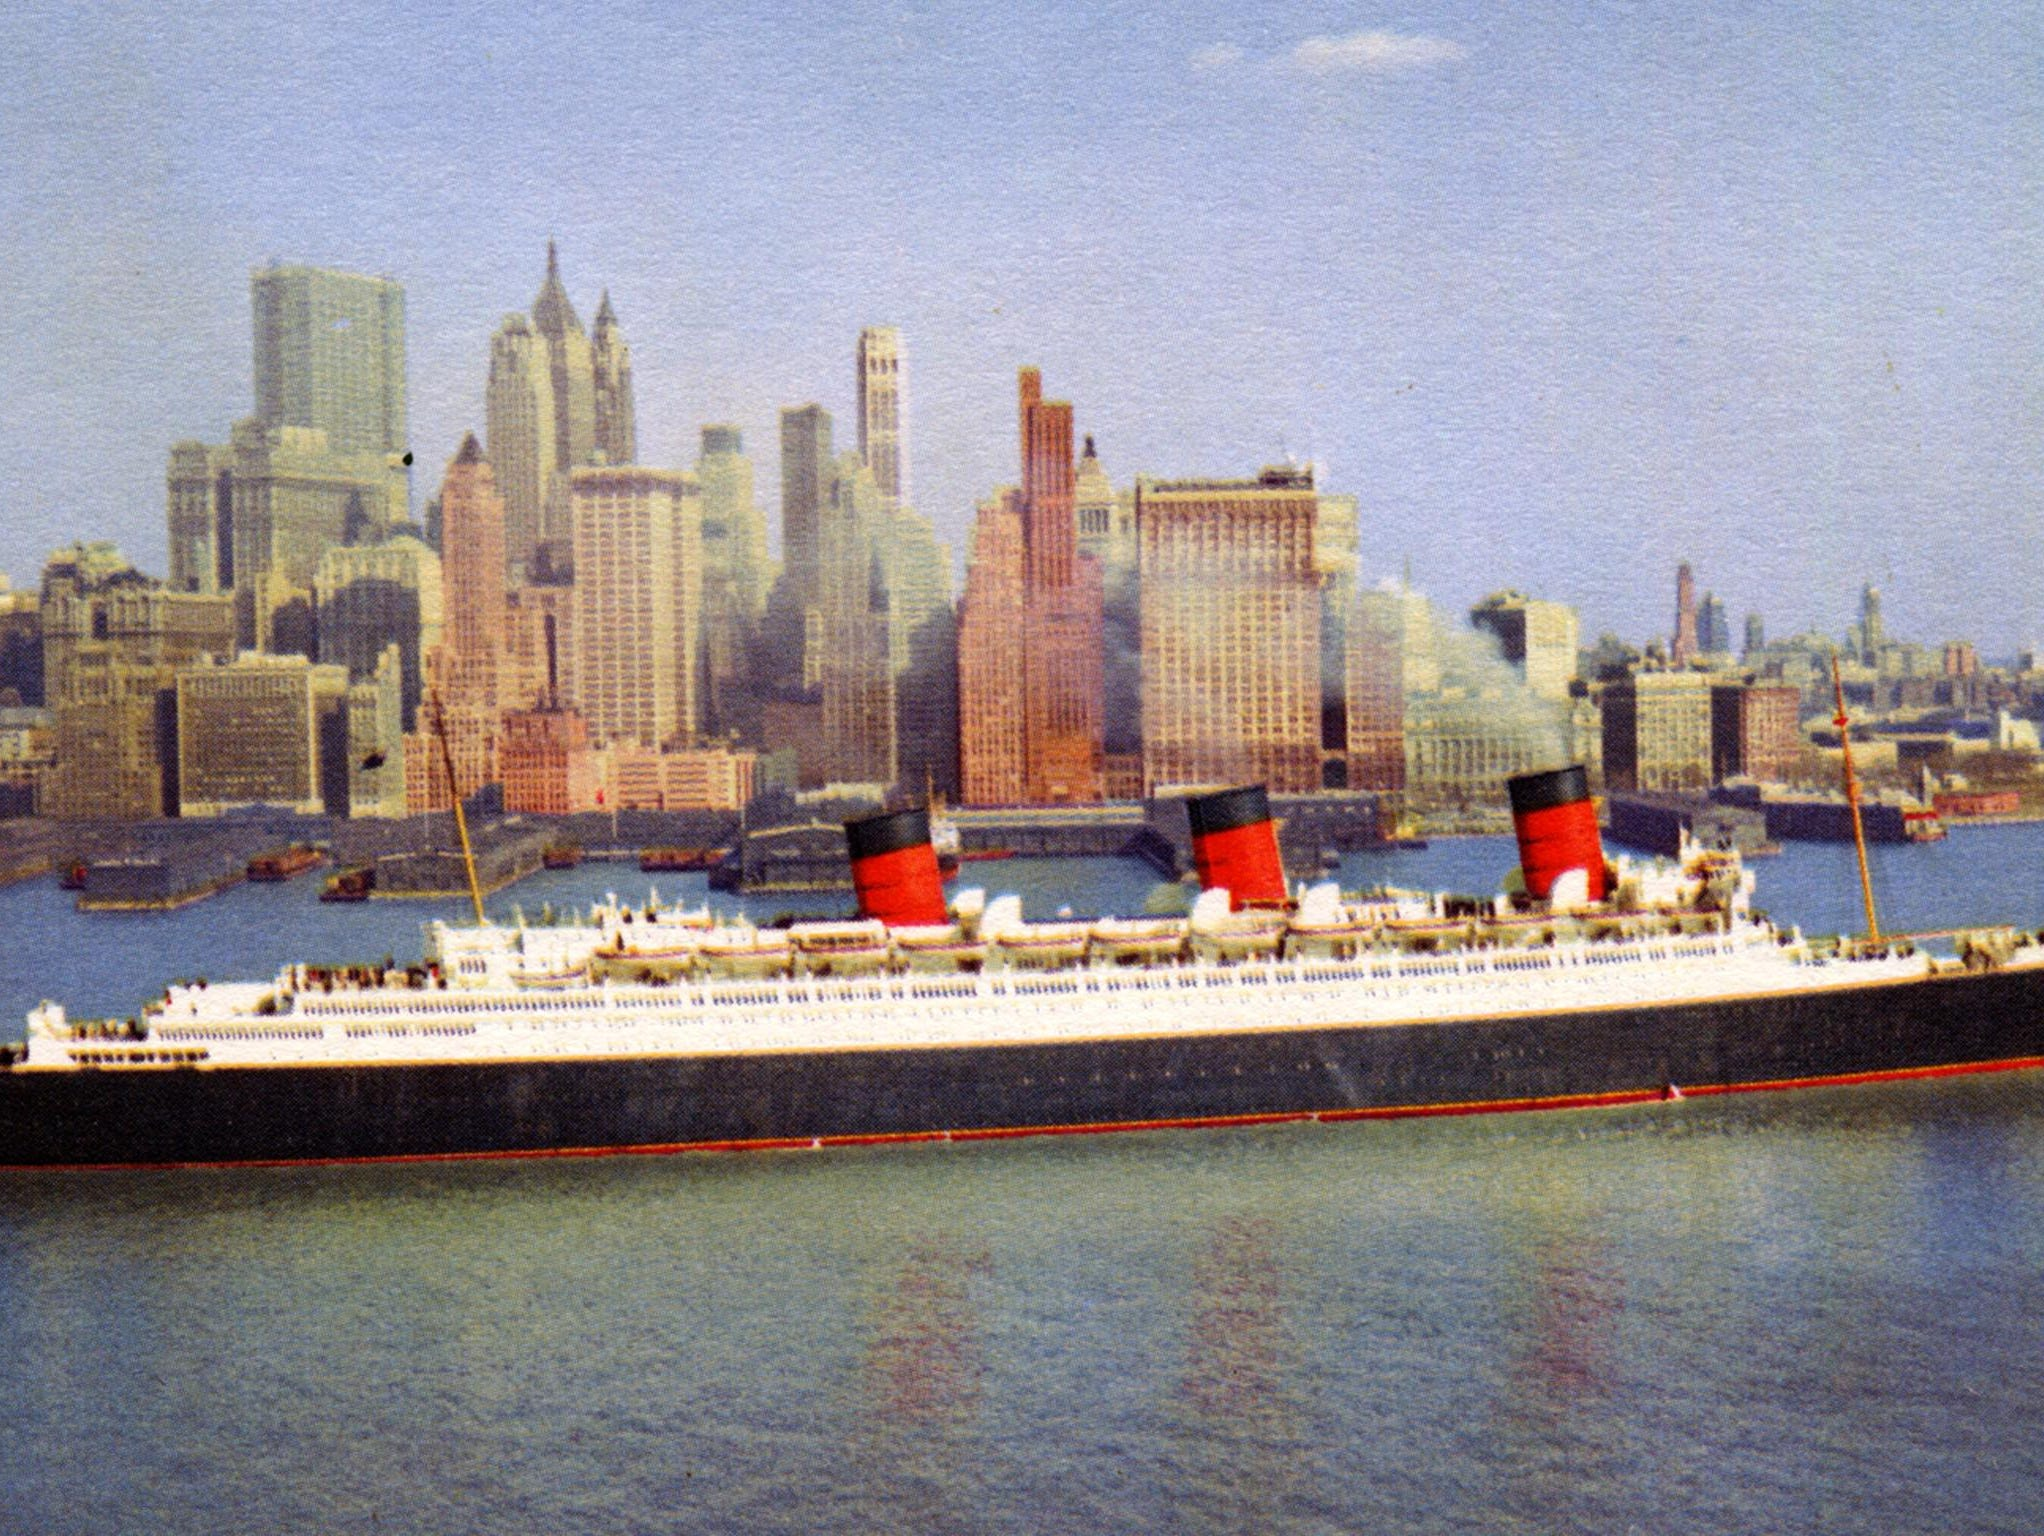 Despite being eclipsed in size by the twin-funneled, 83,000-gross-ton Queen Elizabeth and in 1952, losing the Blue Ribband to the SS United States, the Queen Mary would reign as the most popular and beloved ship in the world -- until the jet airplane brought down the curtain on trans-Atlantic travel in the early 1960s.